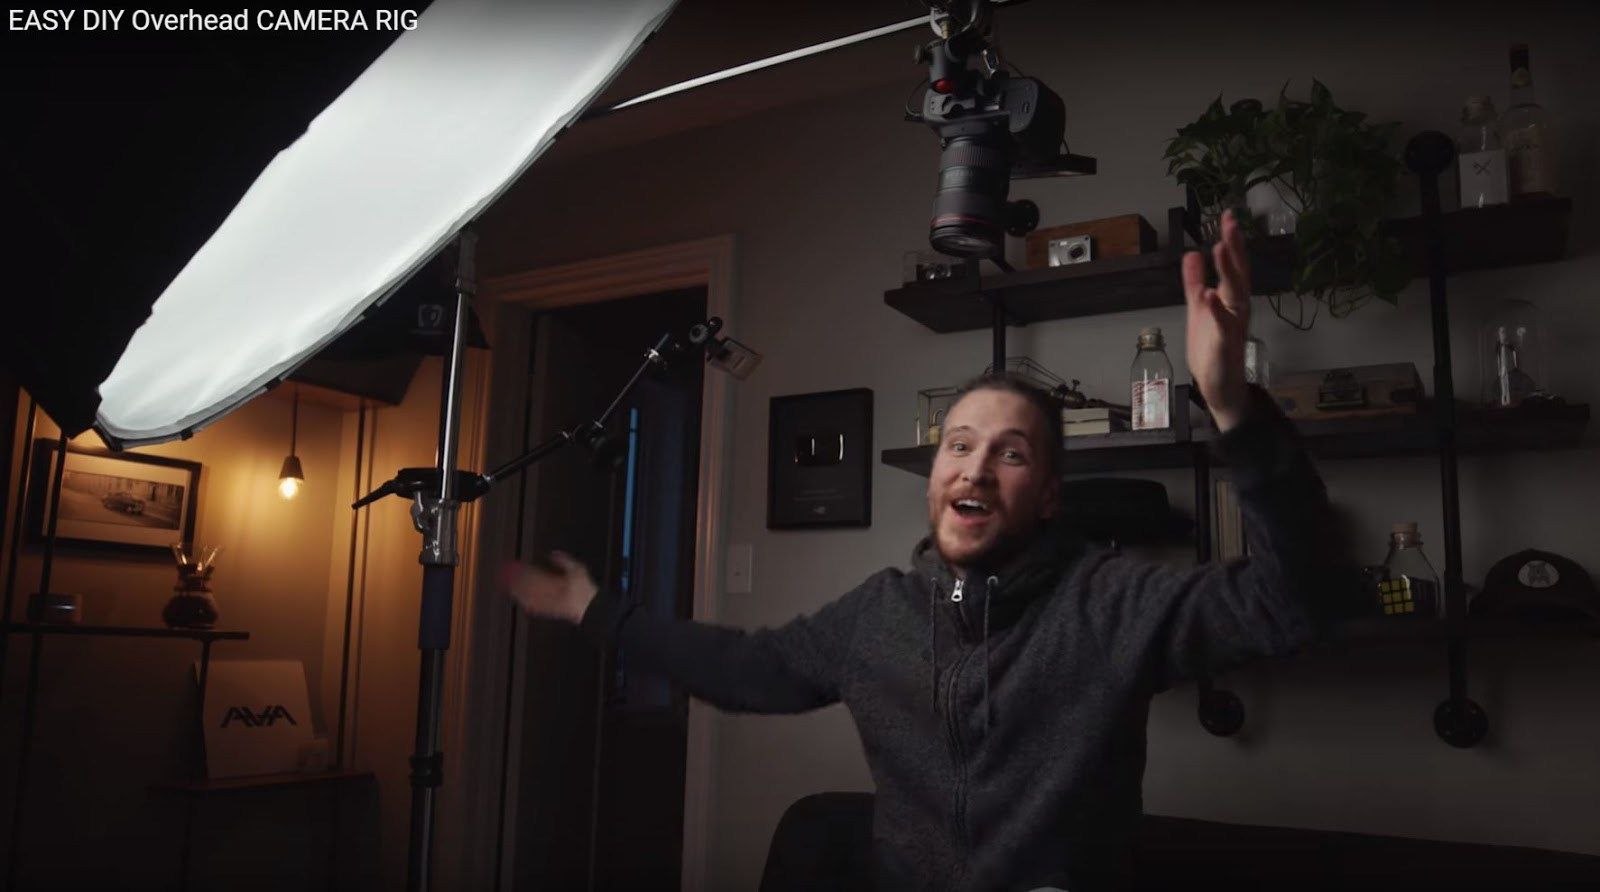 EASY DIY Overhead CAMERA RIG